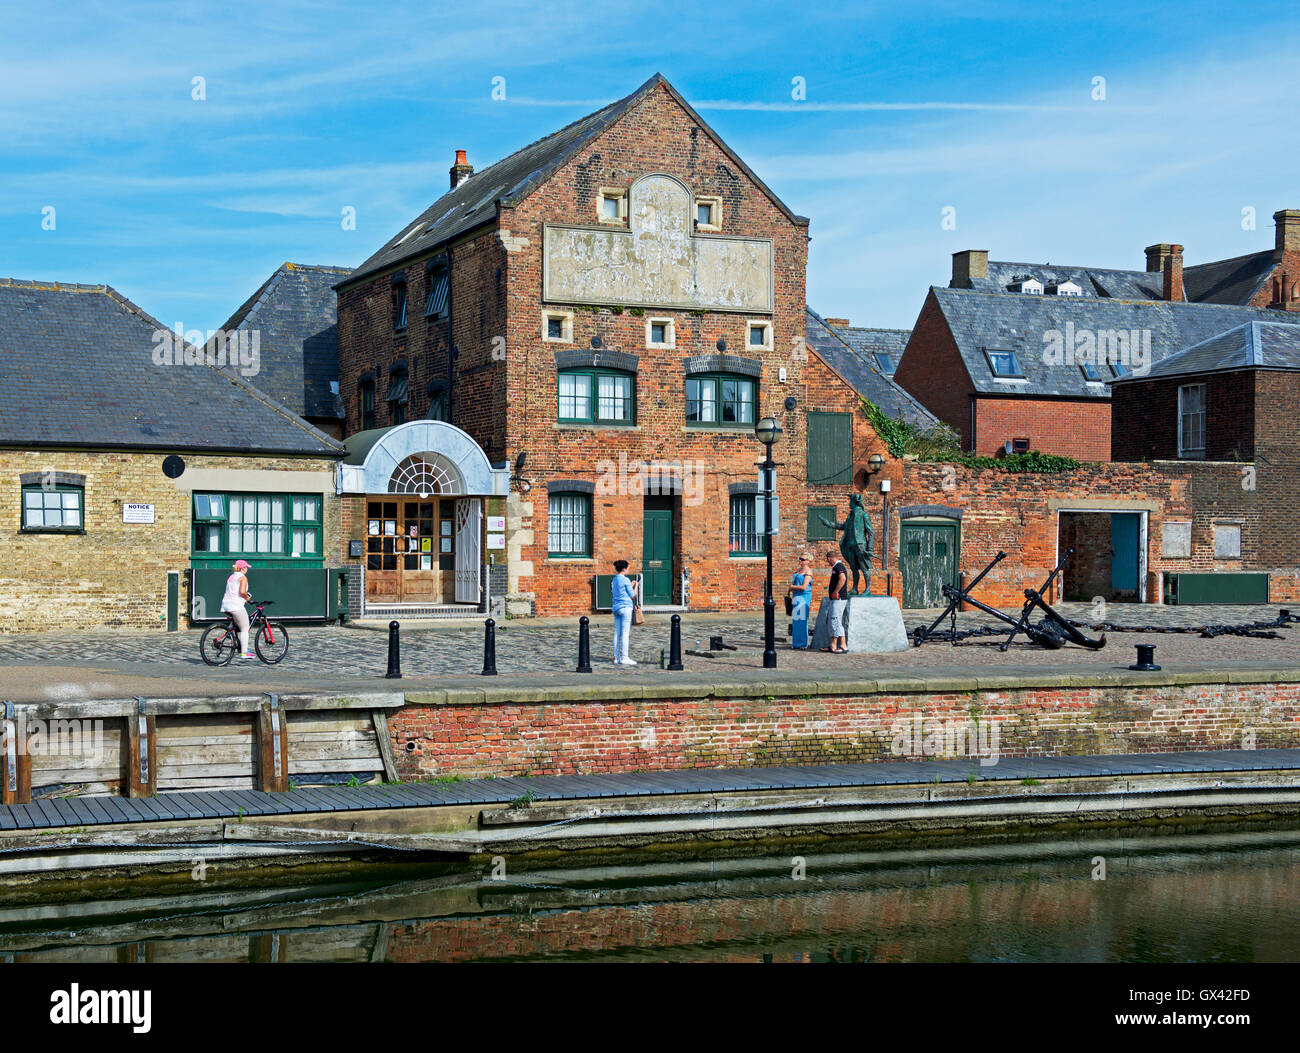 Purfleet Quay, Kings Lynn, Norfolk, England UK - Stock Image